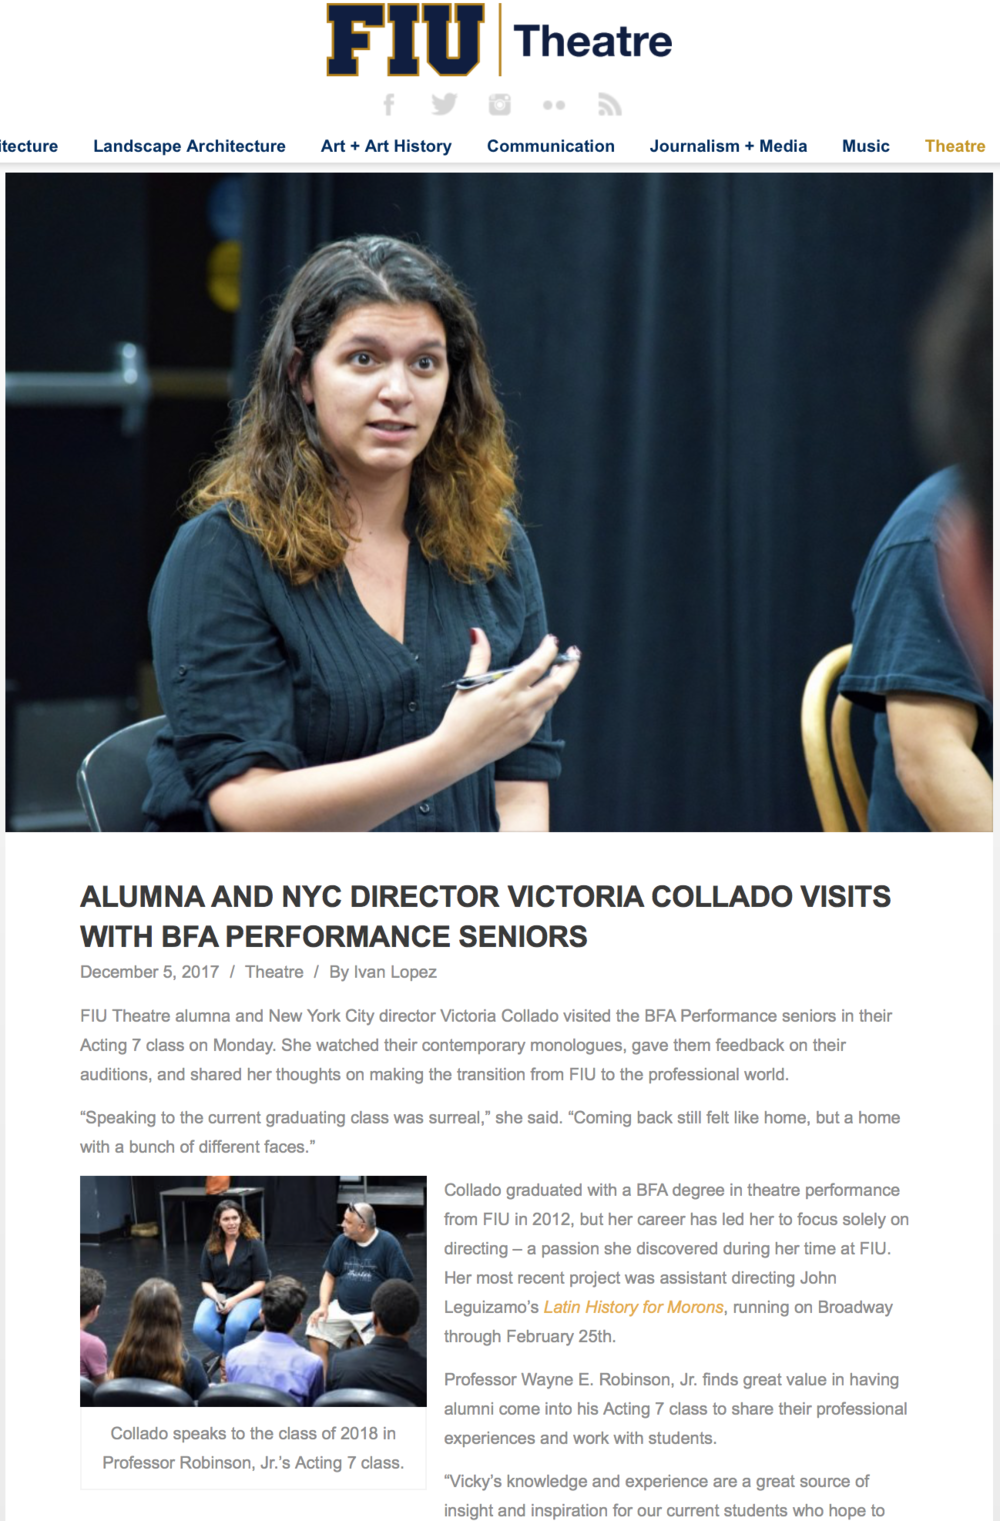 alumna director visits bfa students - florida international university